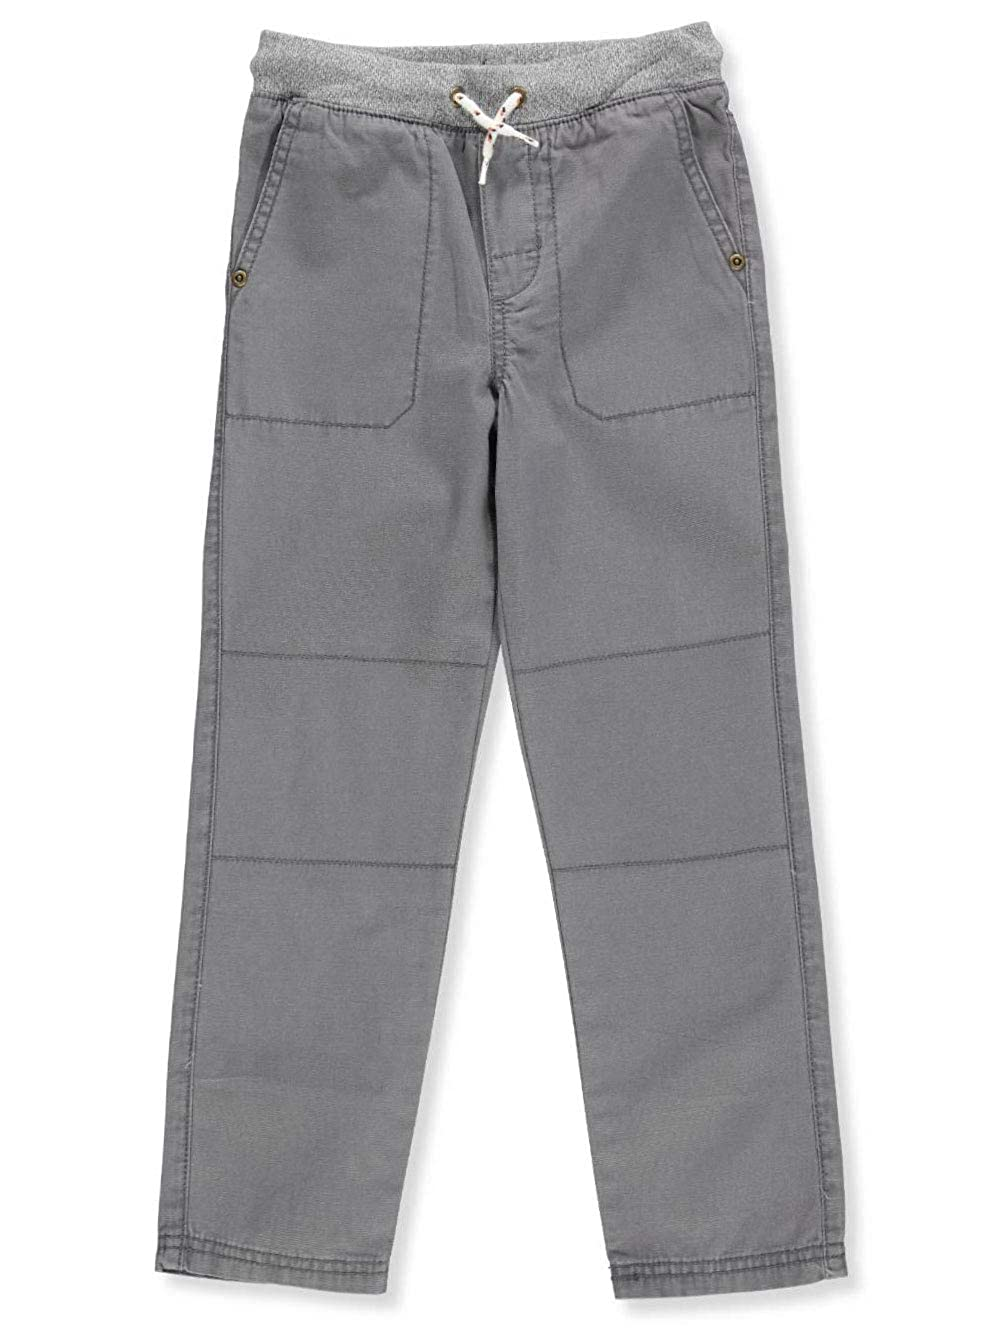 Carters Boys Midtier Drawstring Pants